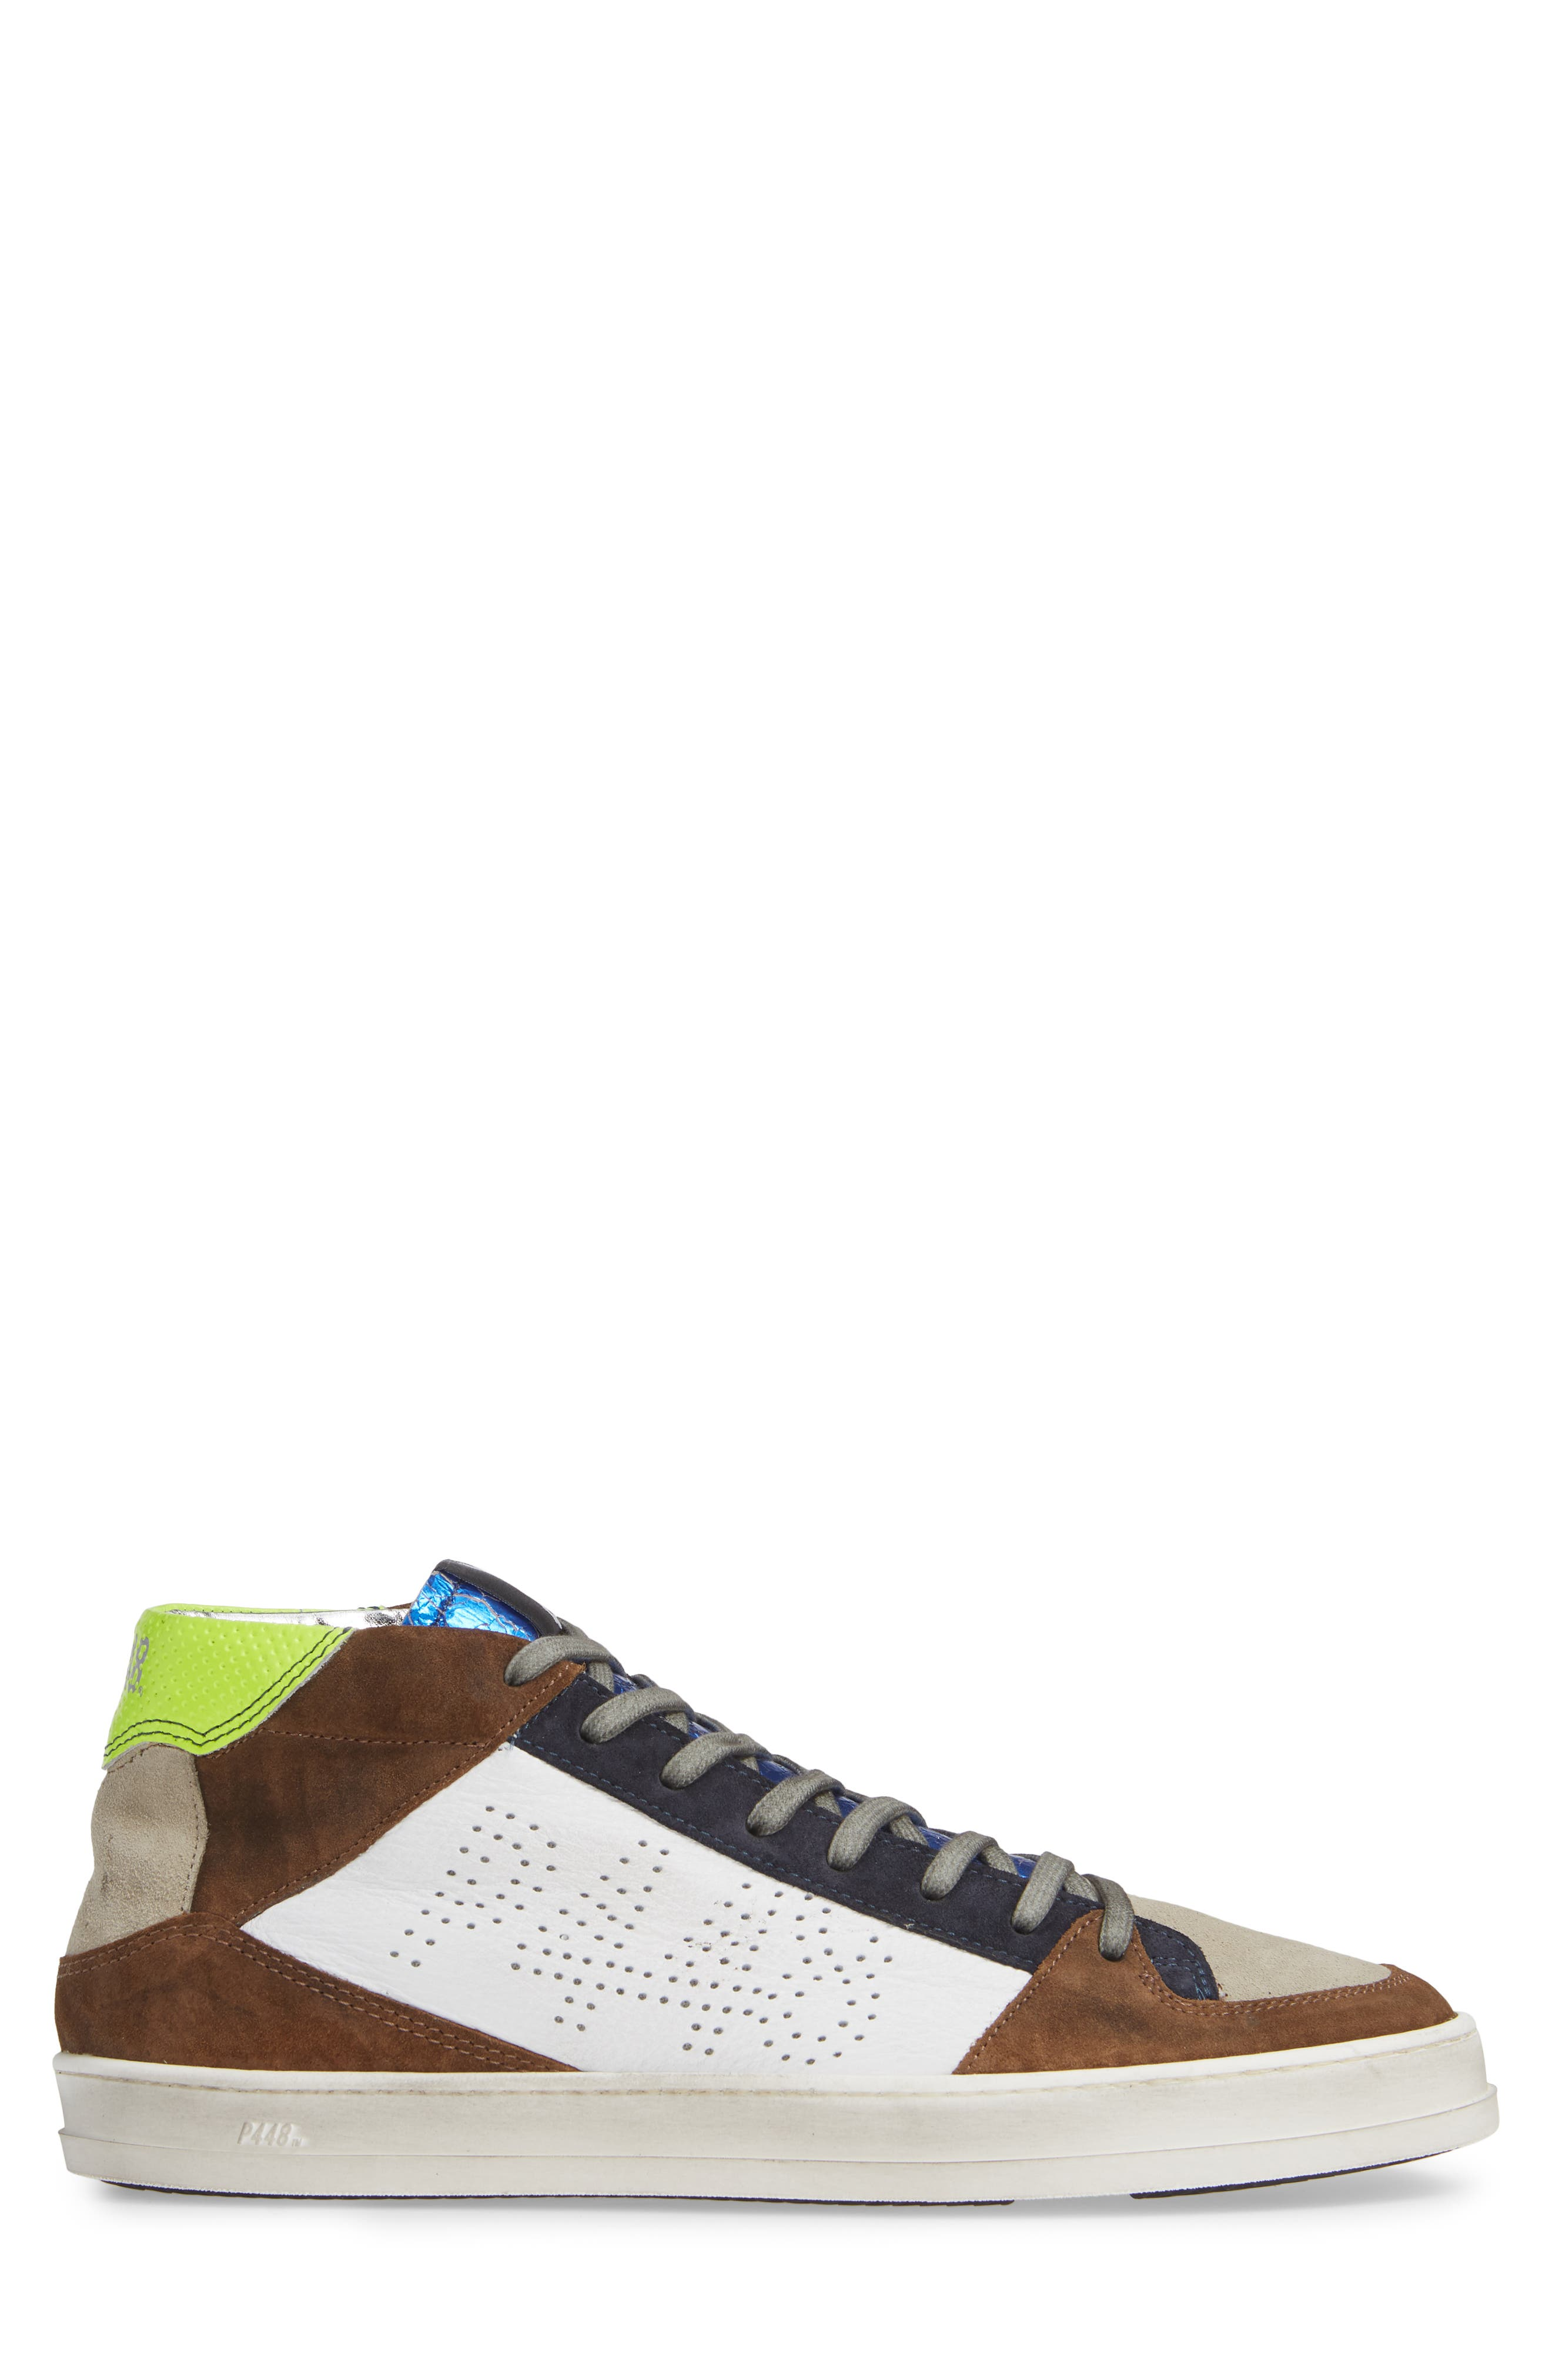 A8Queens Mid Top Sneaker,                             Alternate thumbnail 3, color,                             YELLOW